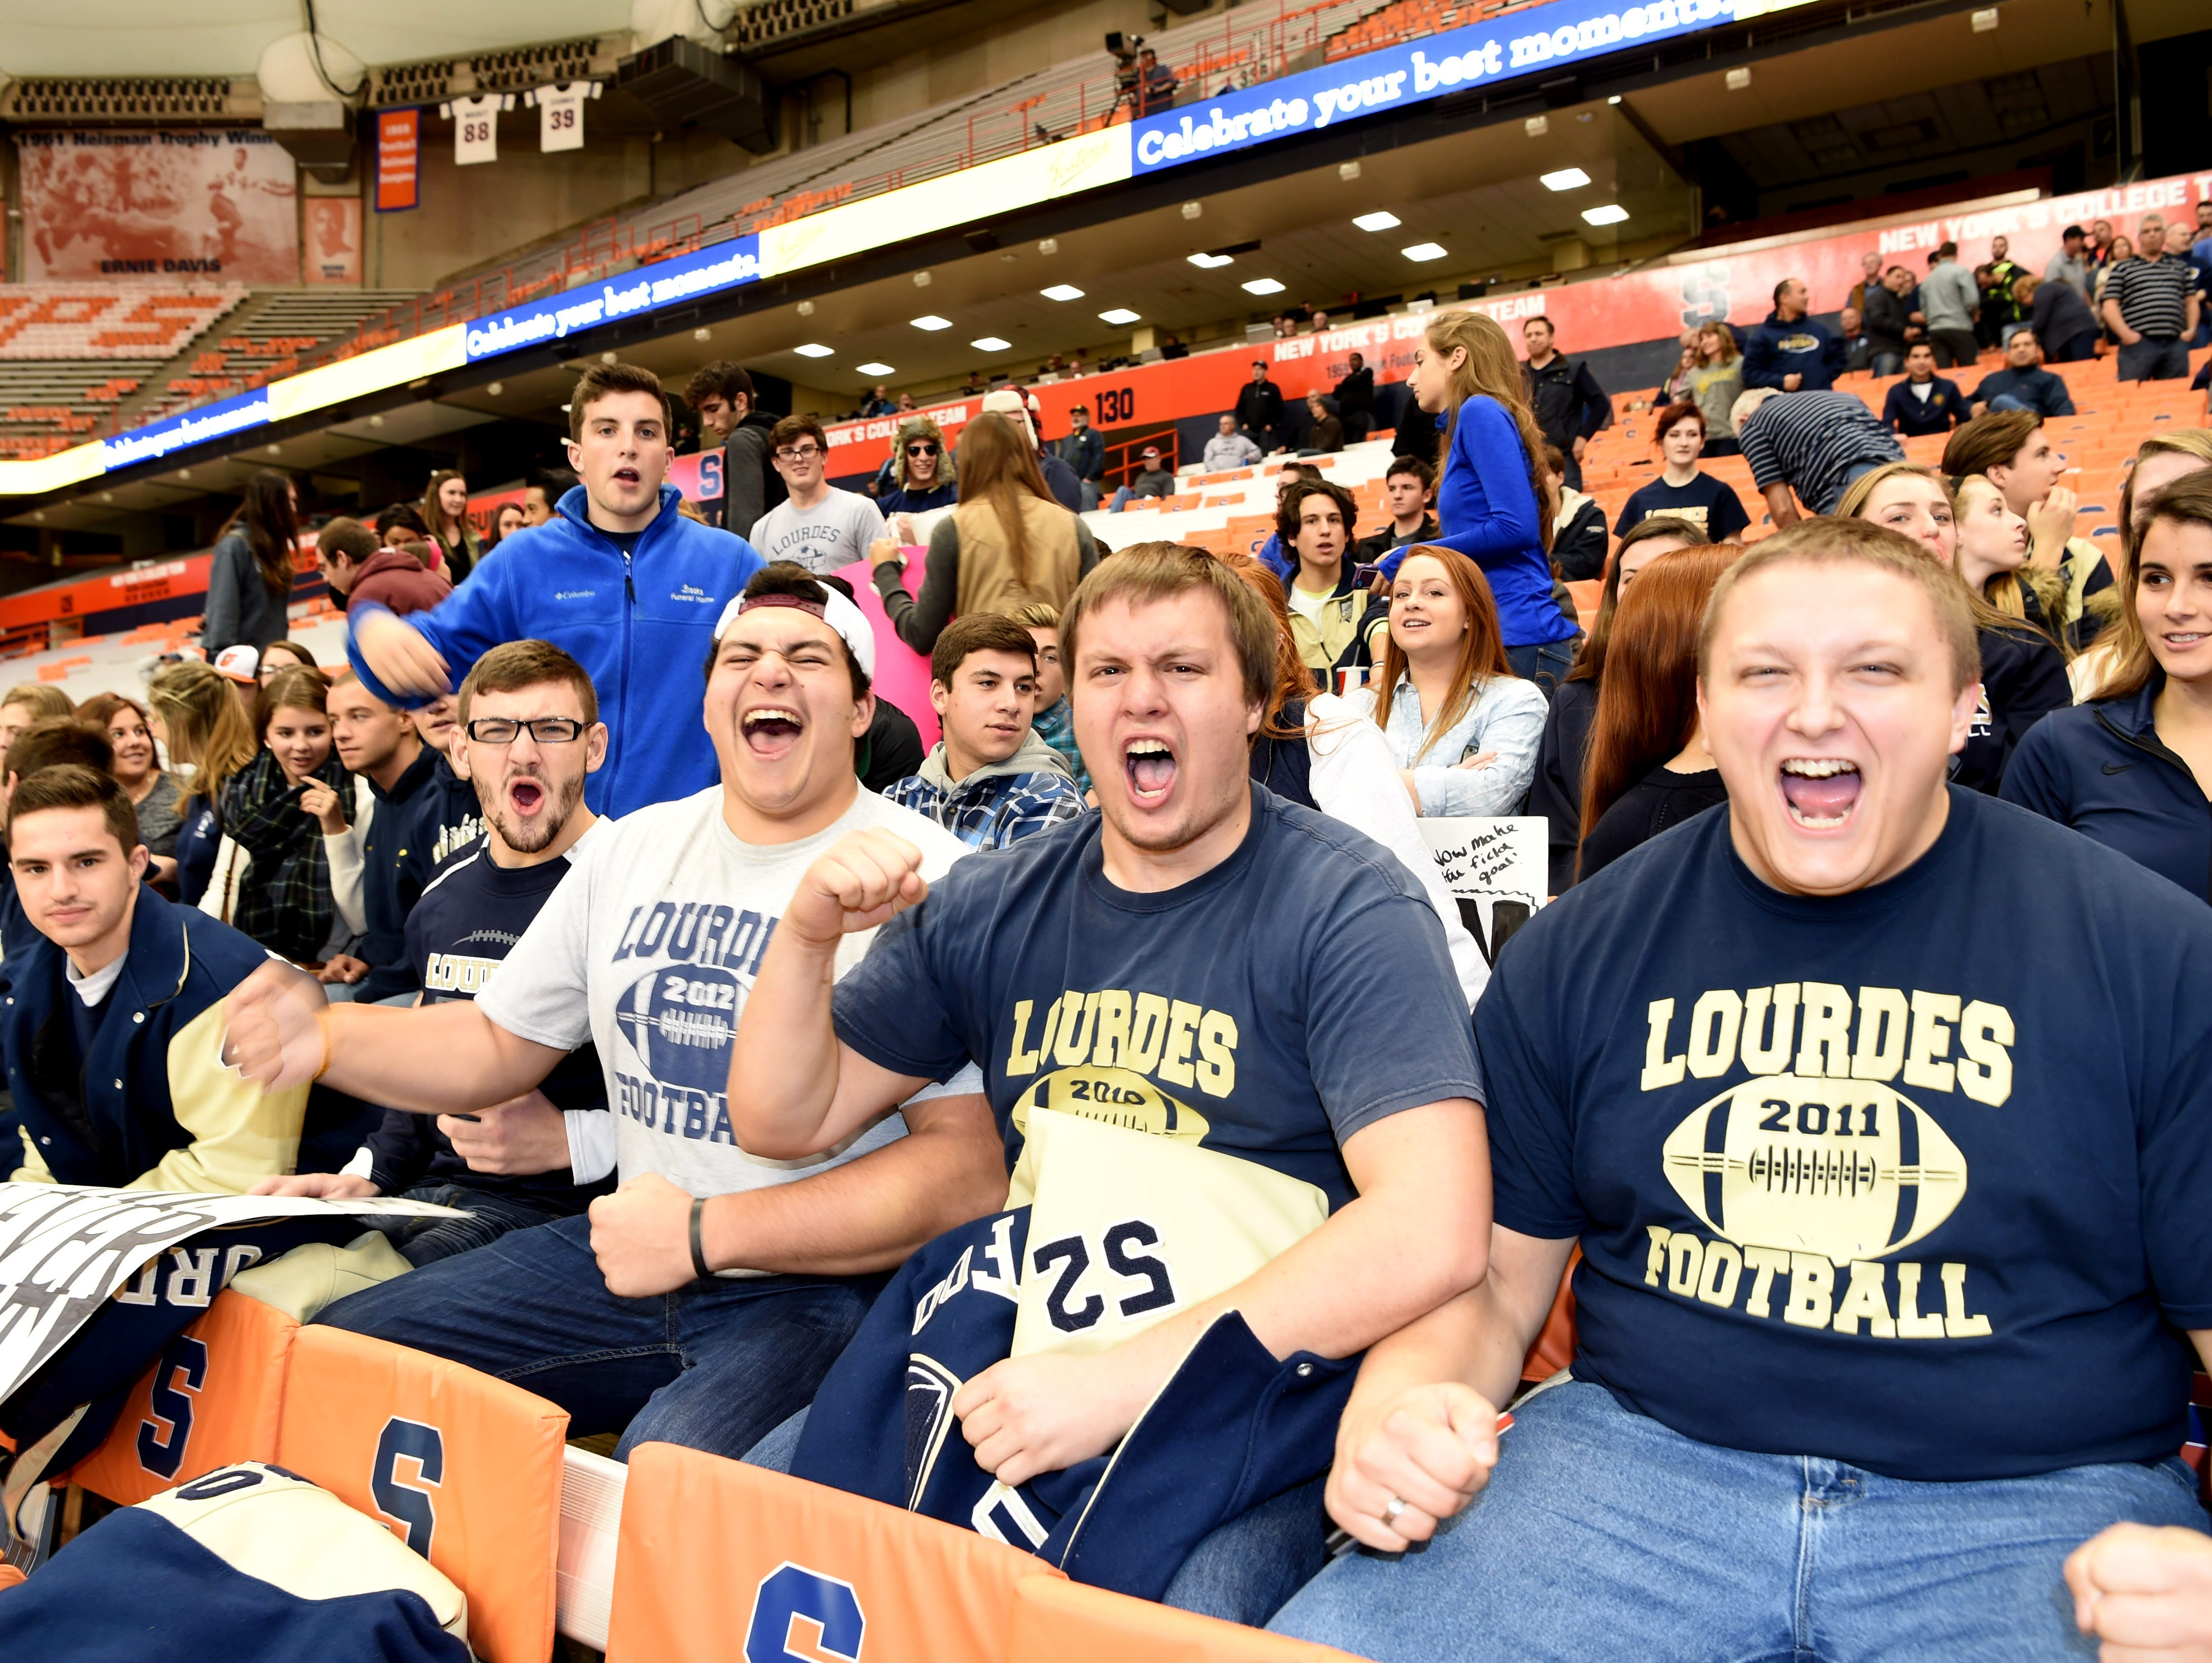 Fans from Poughkeepsie cheer on Our Lady of Lourdes football at the New York State Championships in Syracuse on Friday.